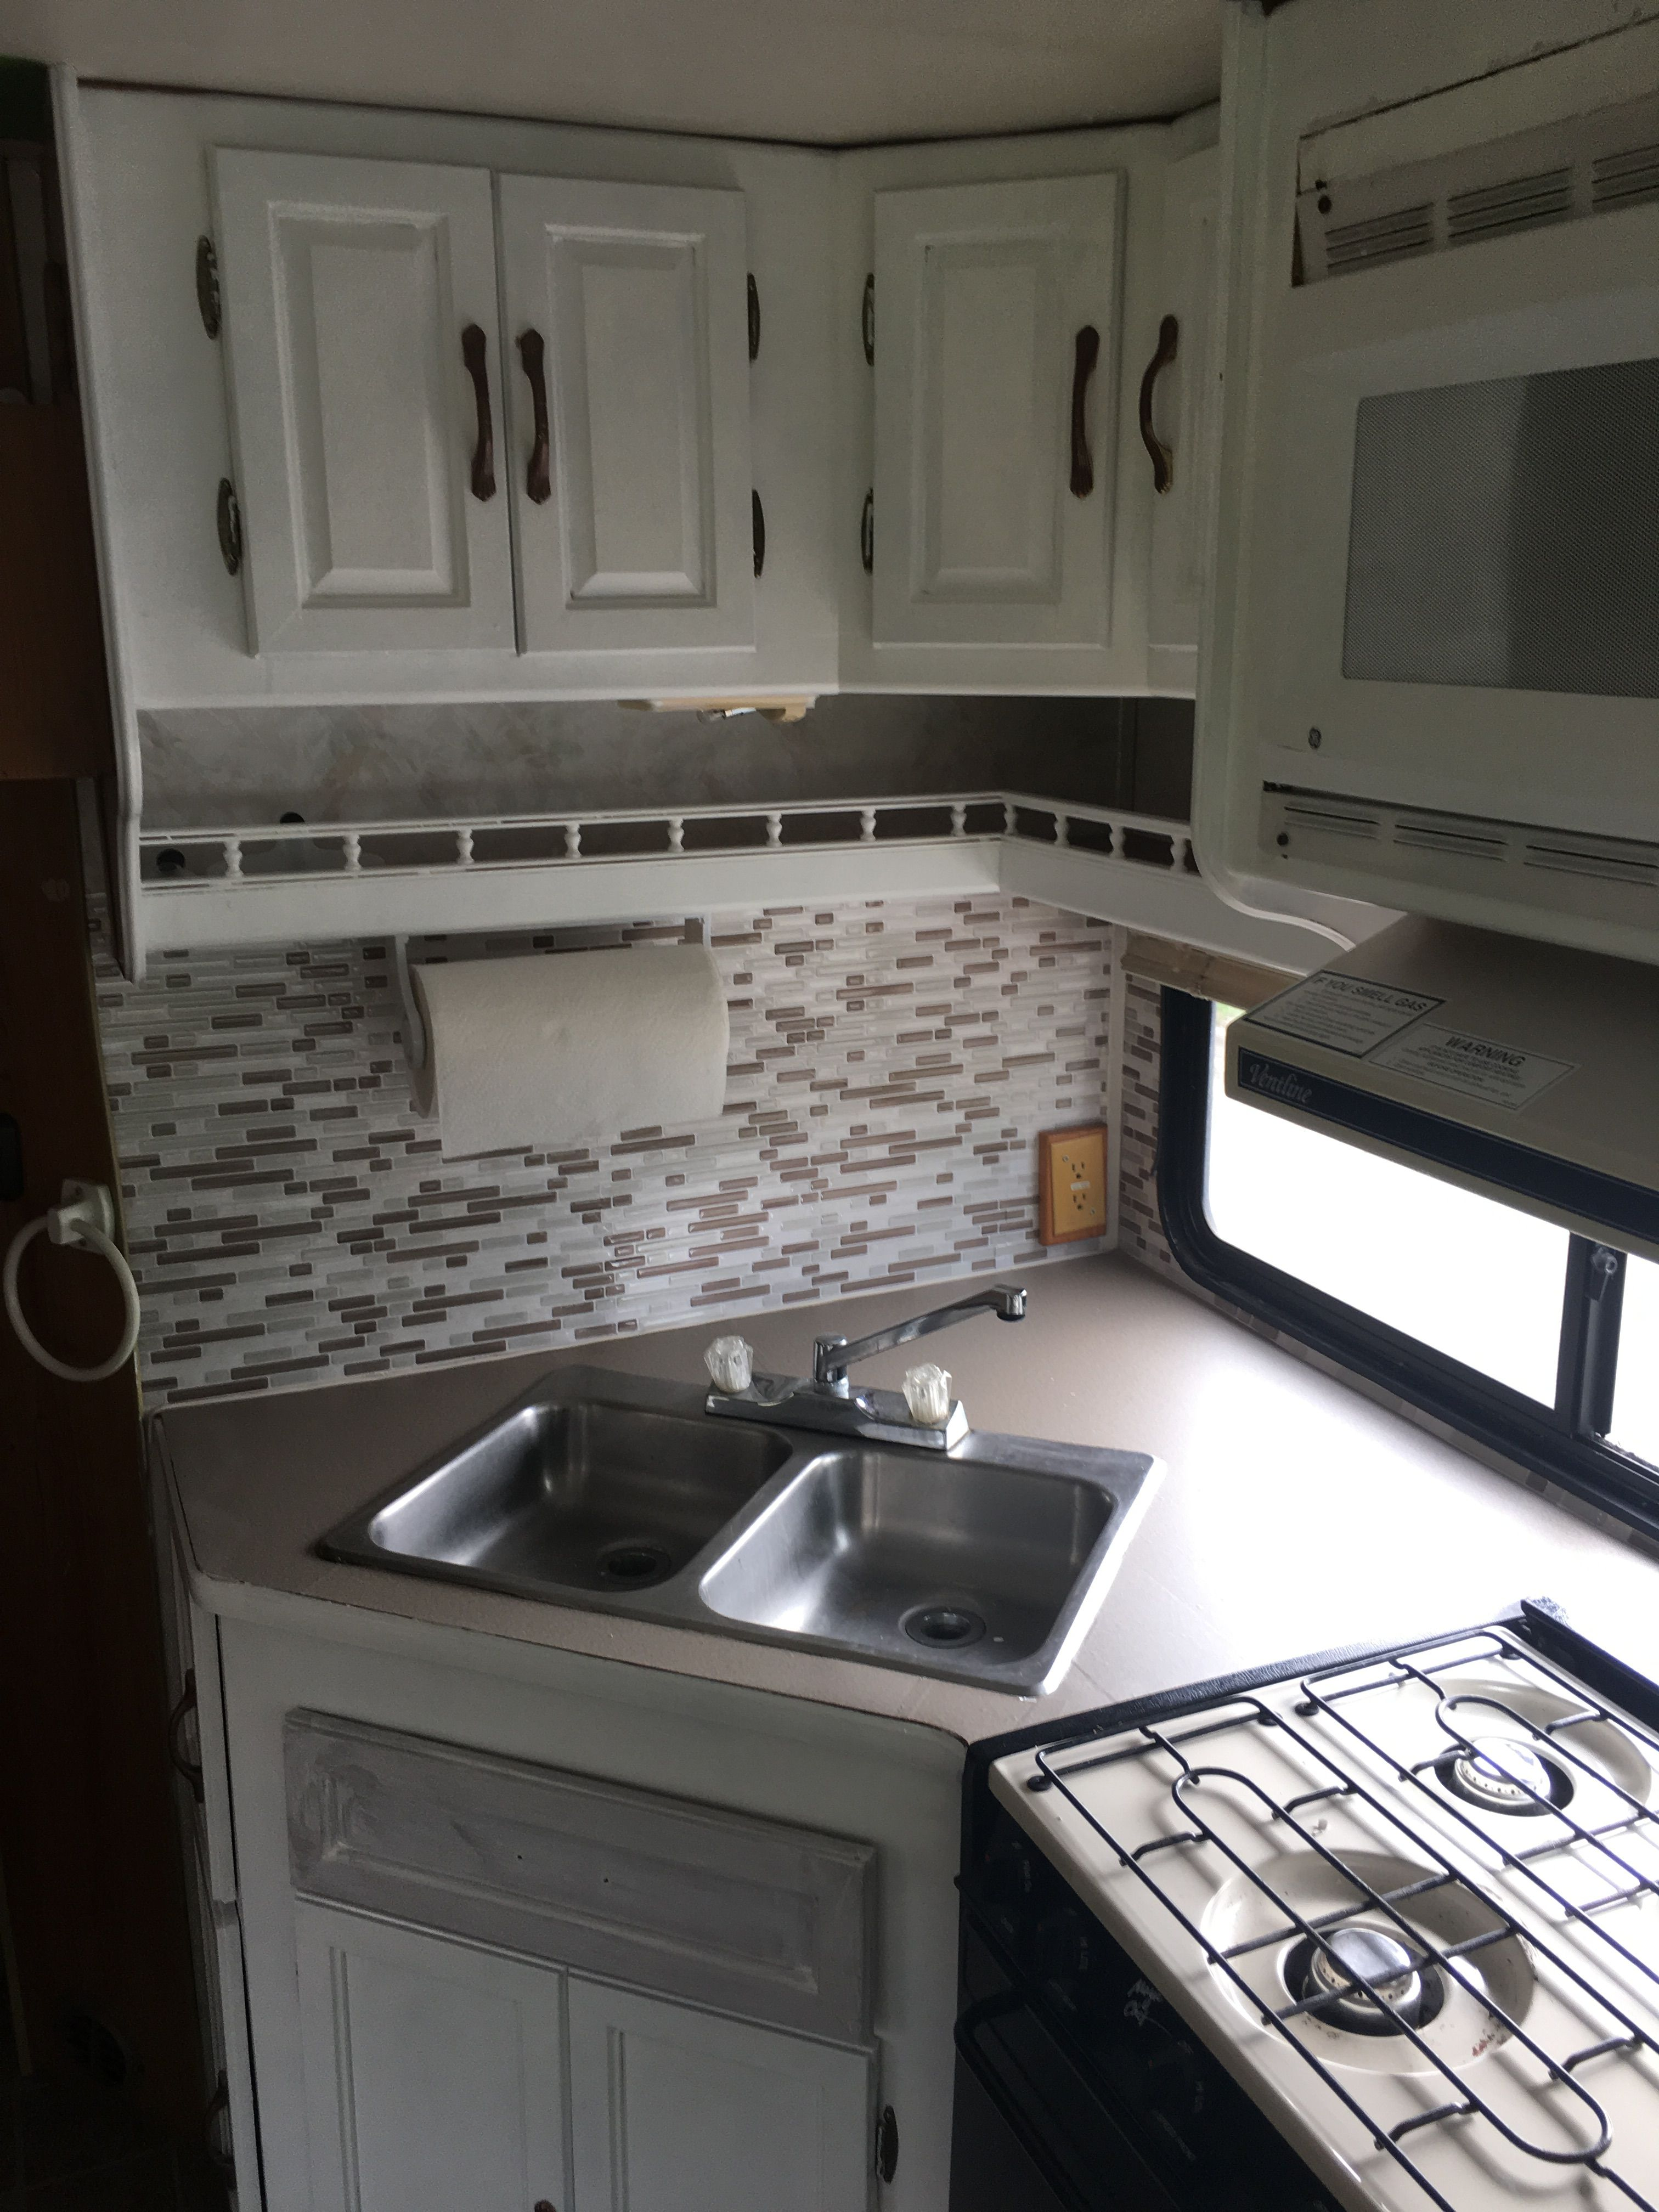 - After I Added Peel And Stick Backsplash And Contact Paper To